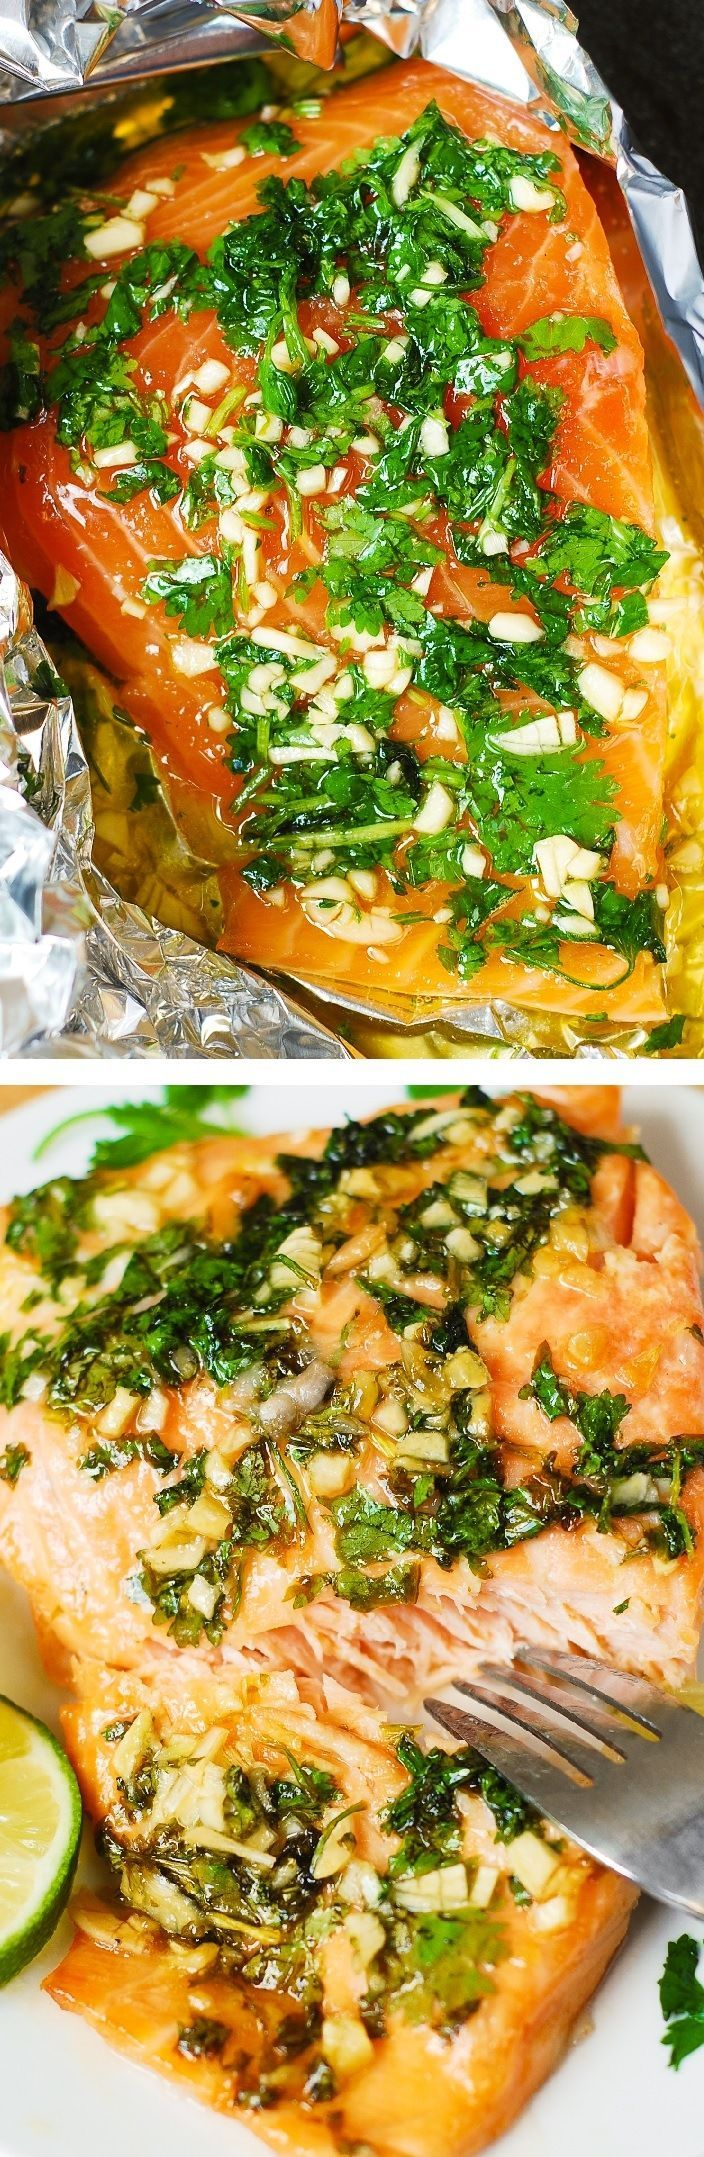 Cilantro-Lime Honey Garlic Salmon #healthy #salmon #paleo